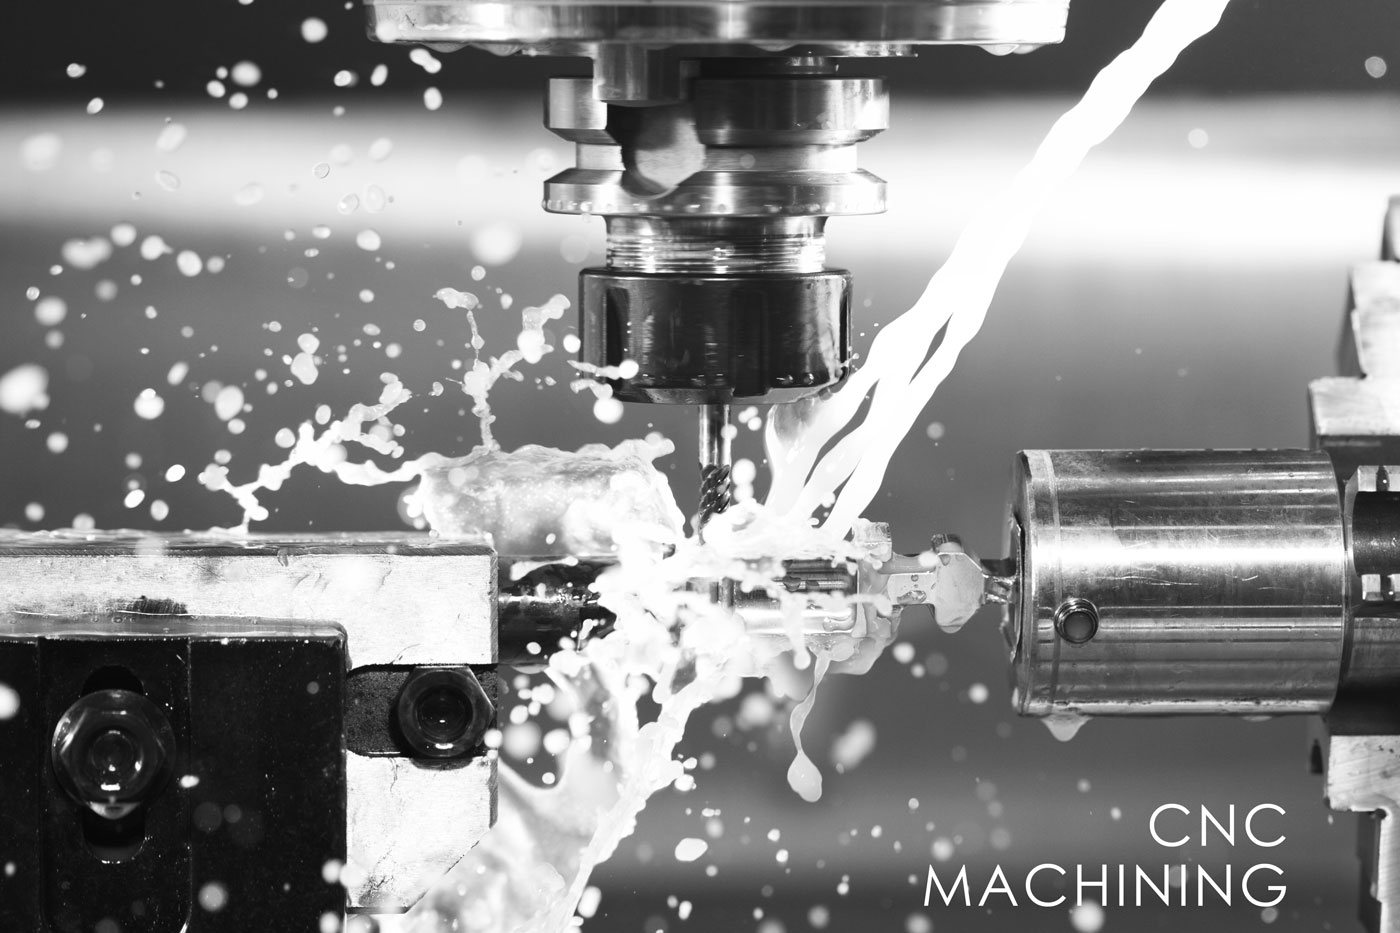 CNC Machining - Although we have many tools for hand processing, we don't have a CNC in-house.  Lucky for us, our neighbors are a fully license machine shop and they love giving us the best prices.